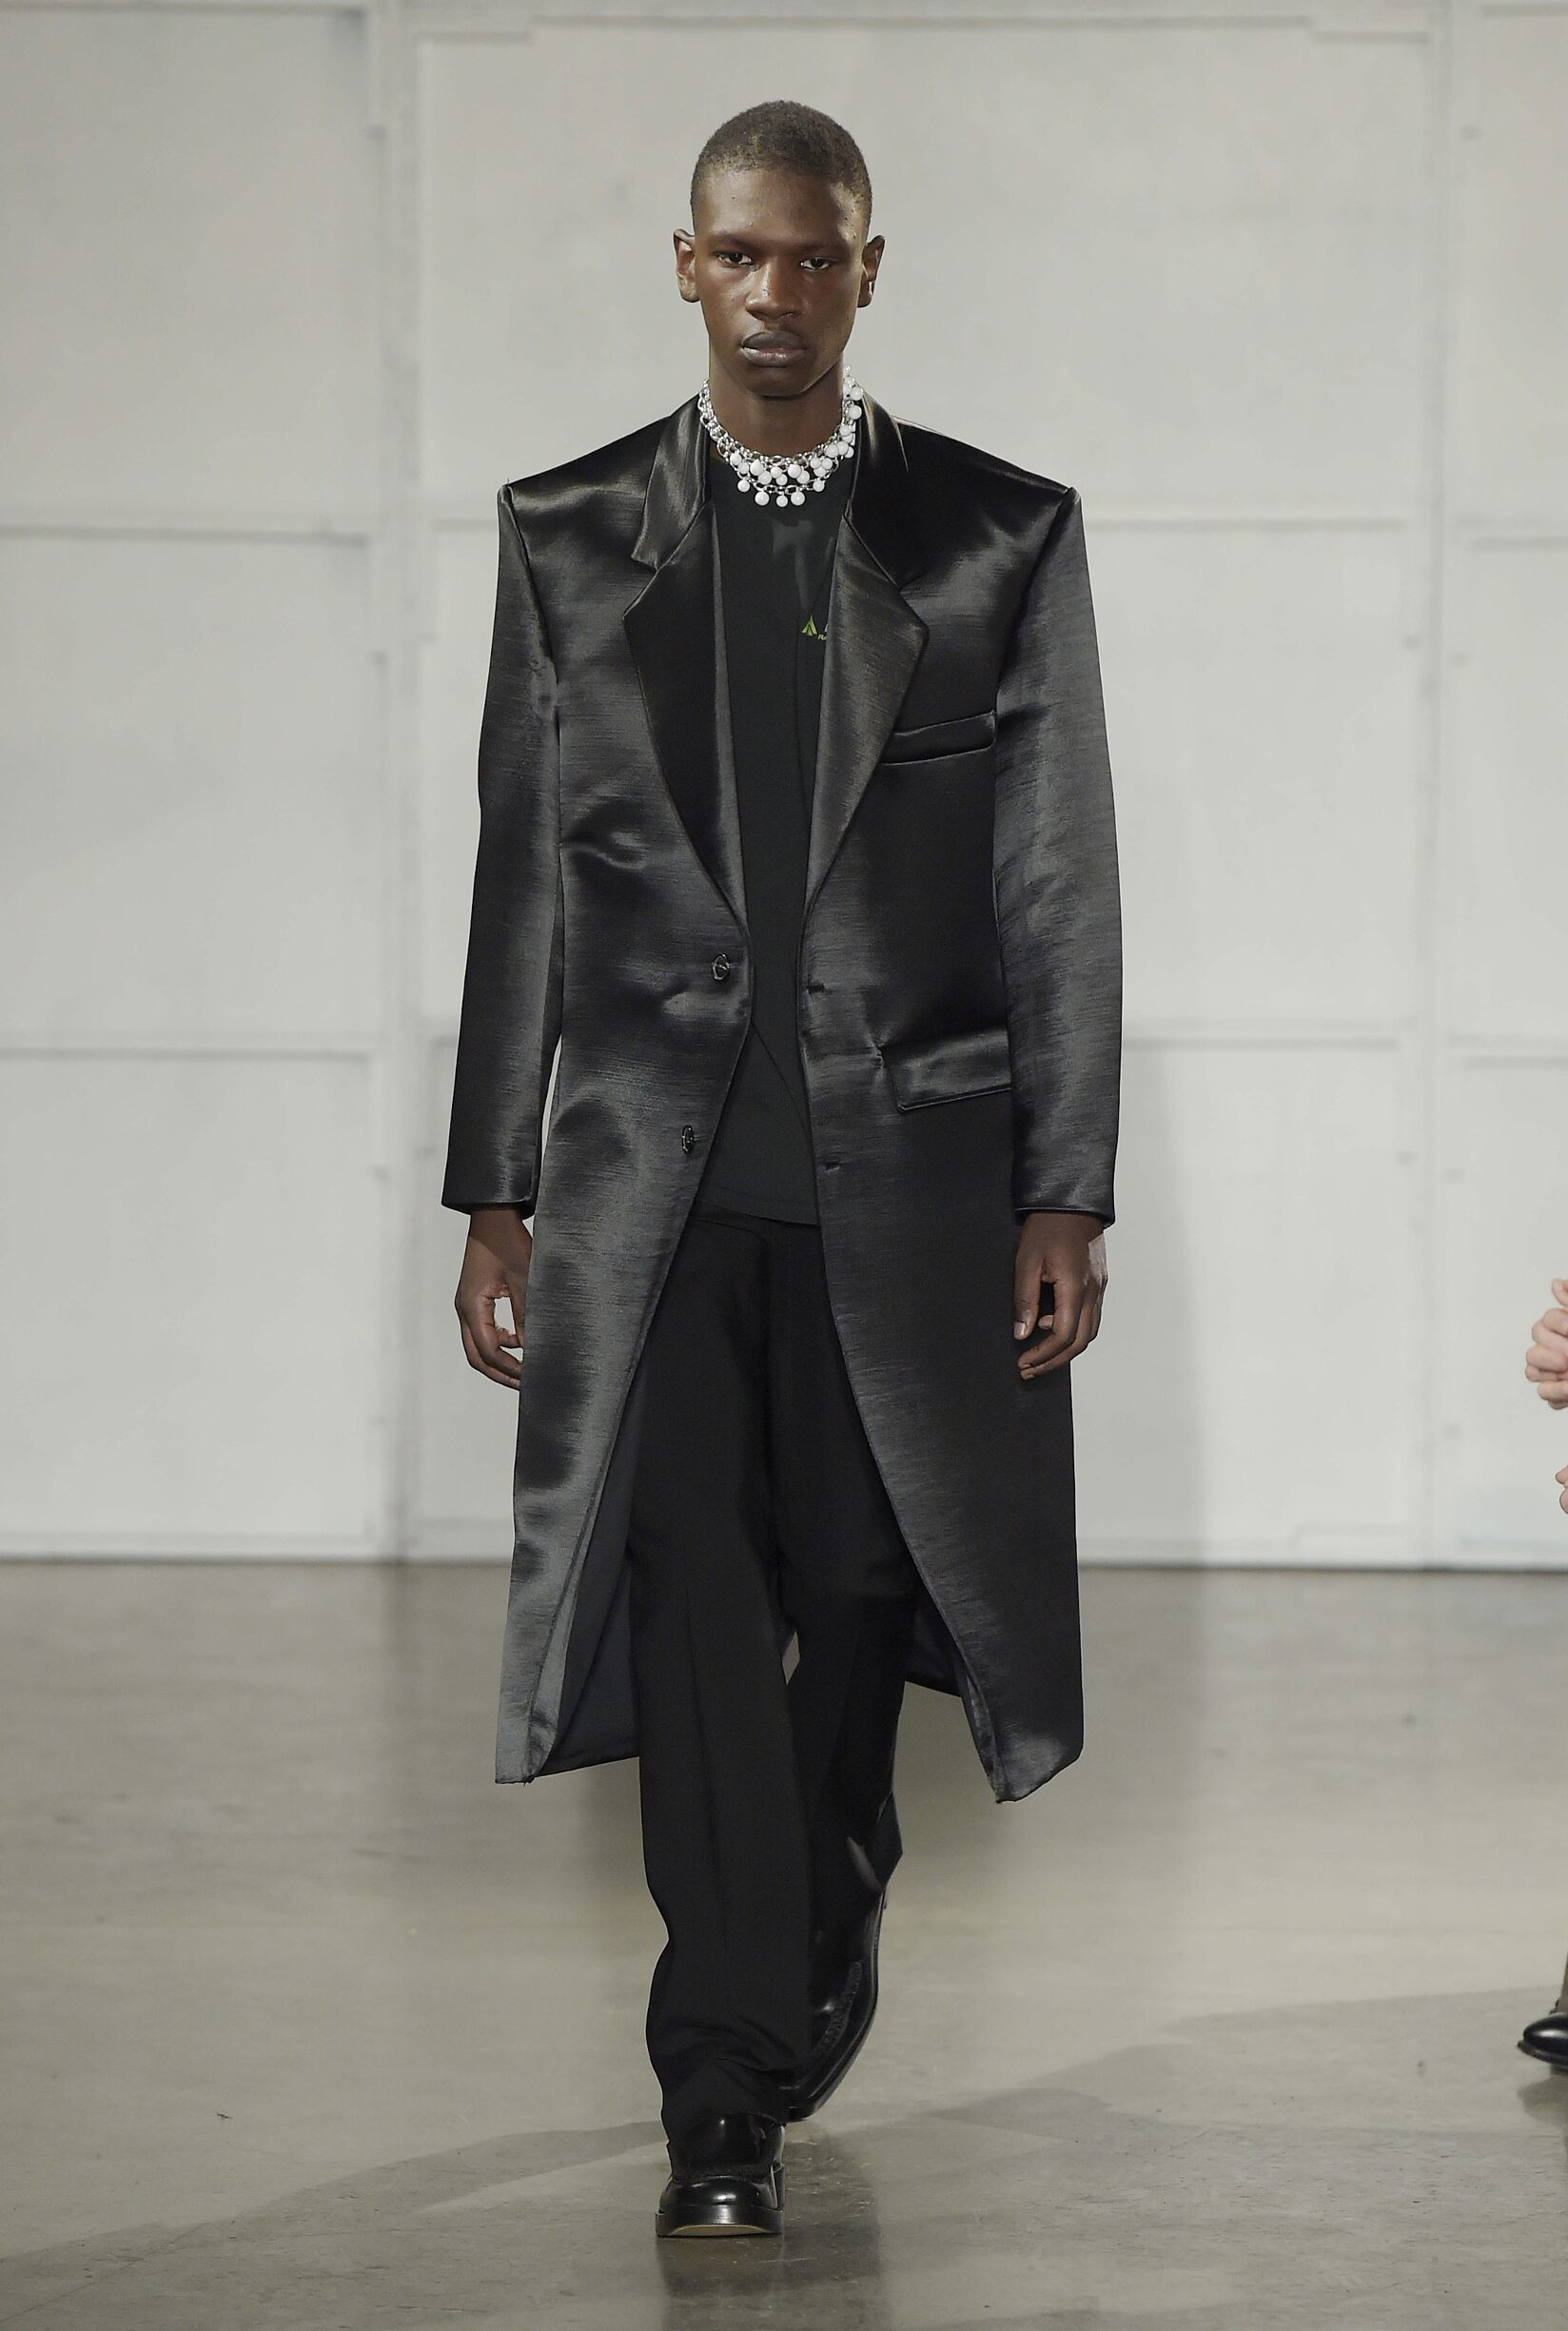 Runway Raf Simons Fall Winter 2017 Men's Collection New York Fashion Week